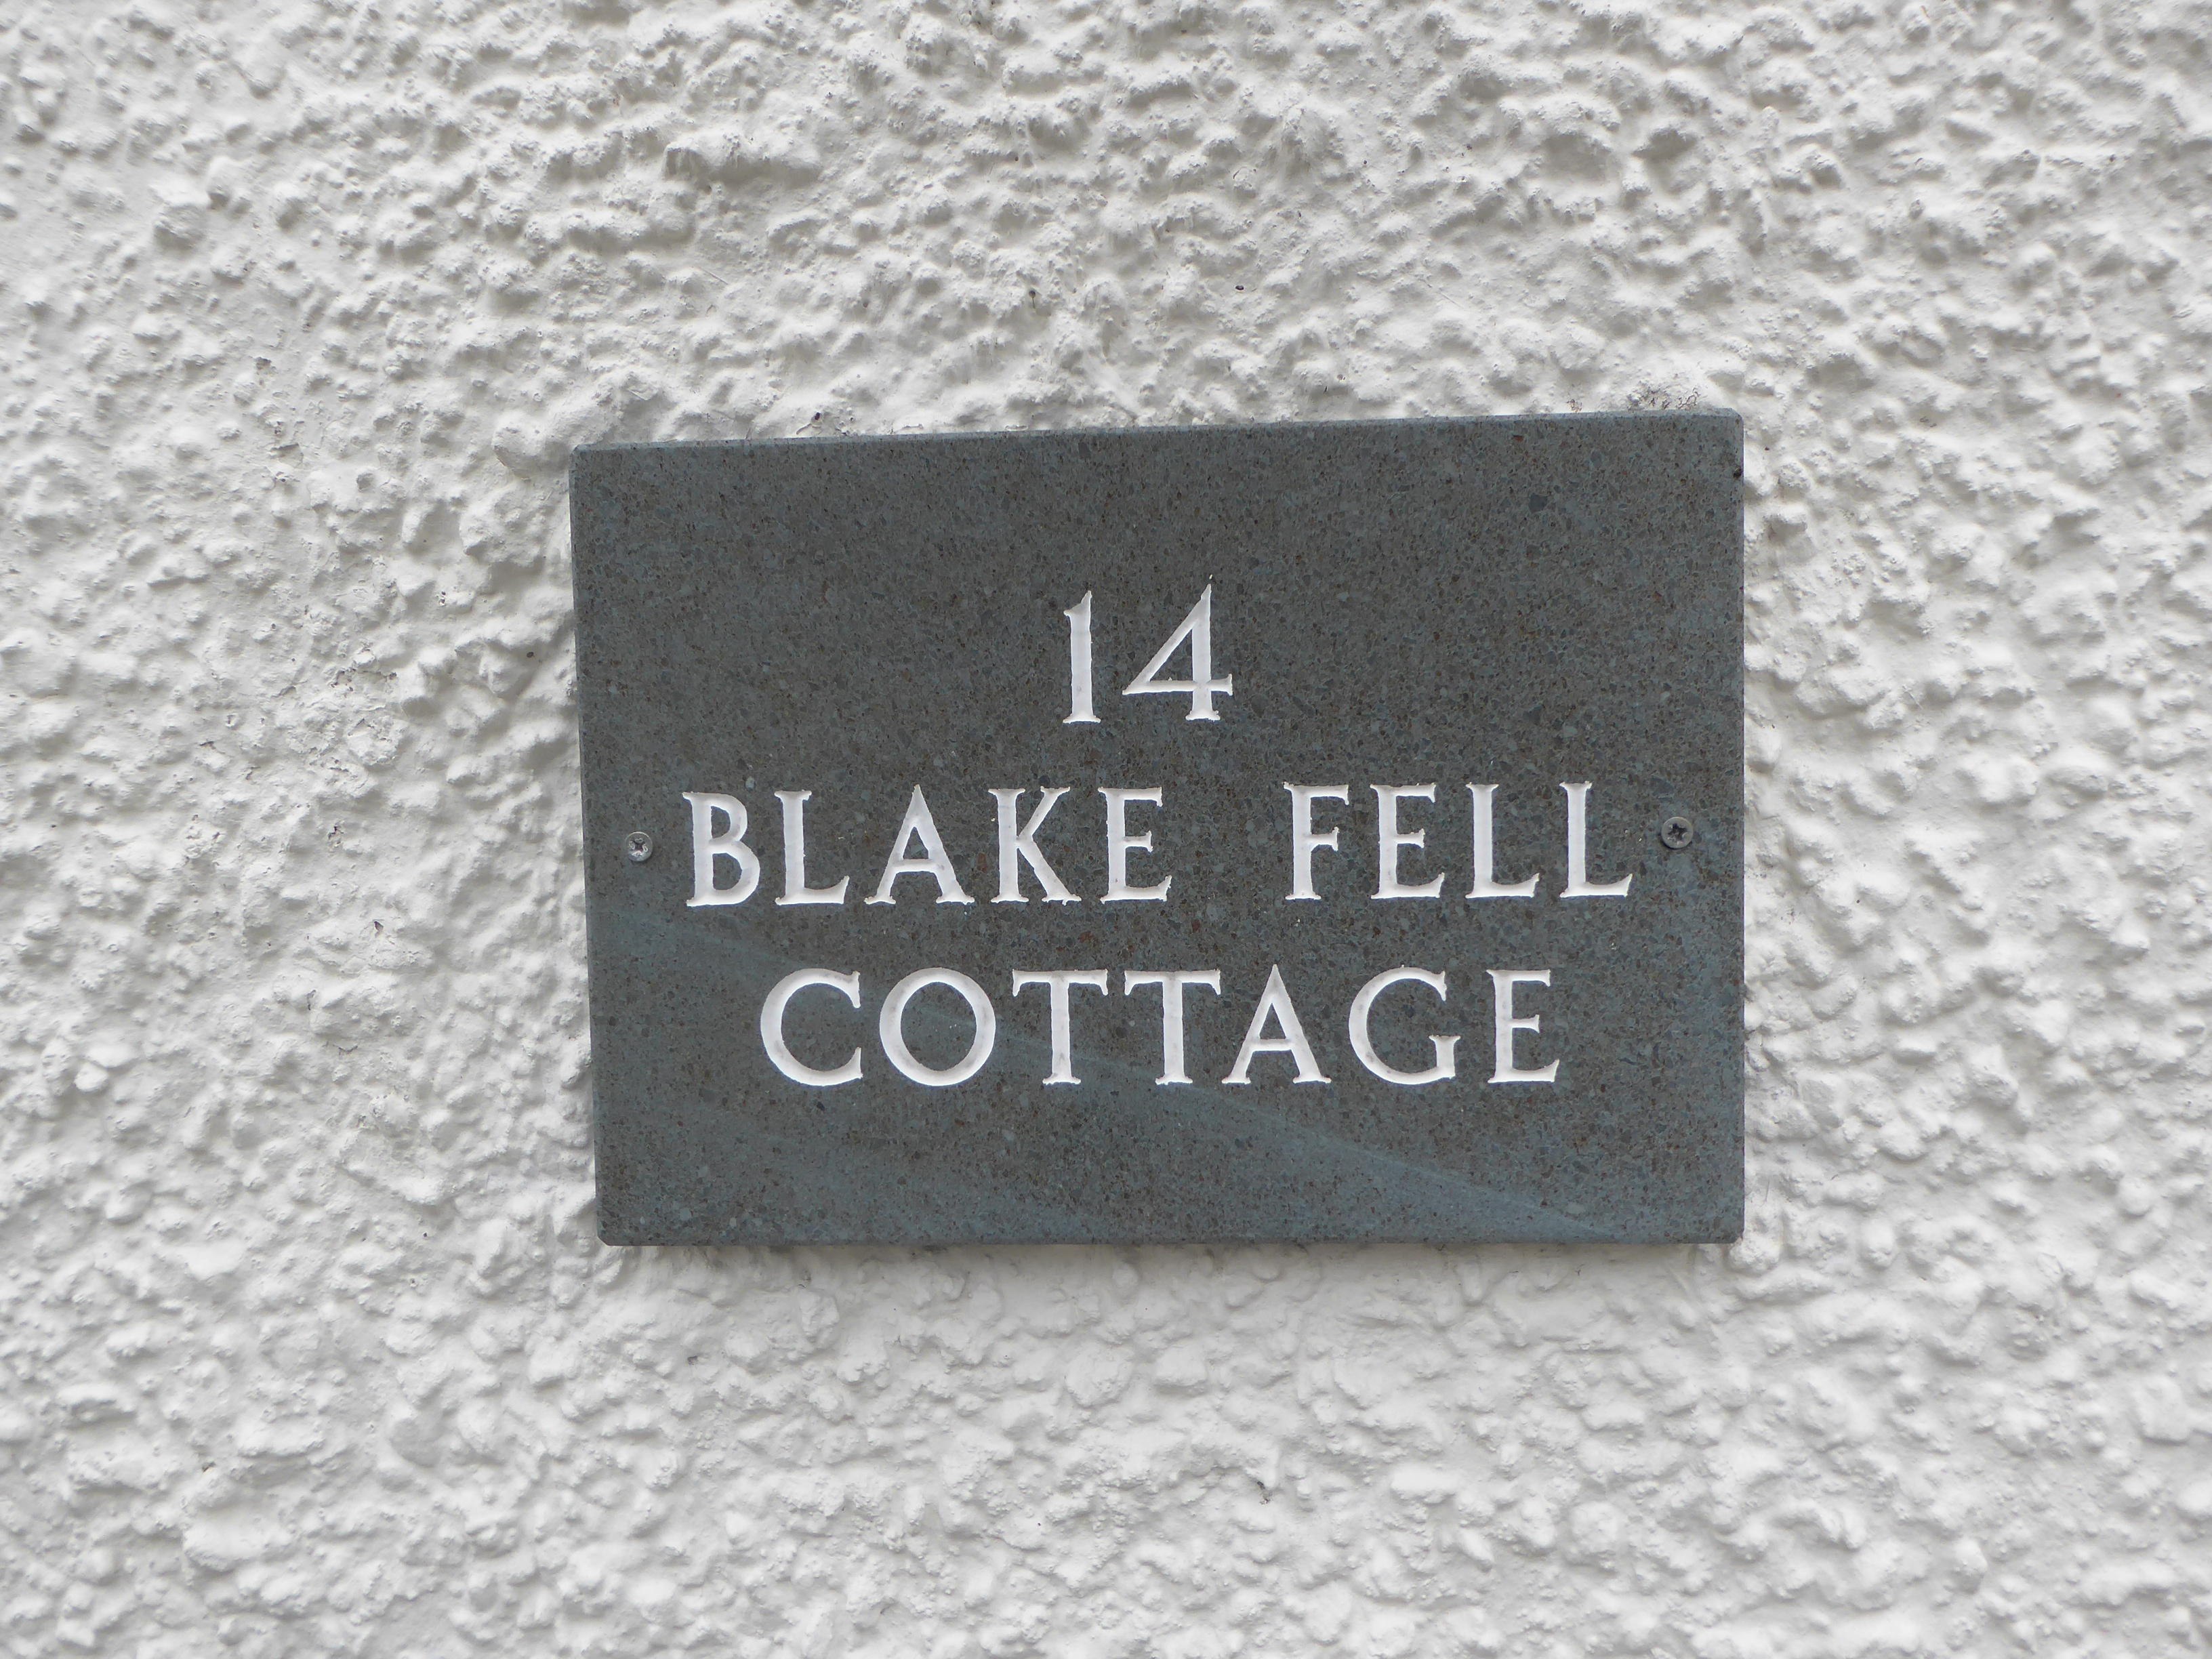 Blake Fell Cottage